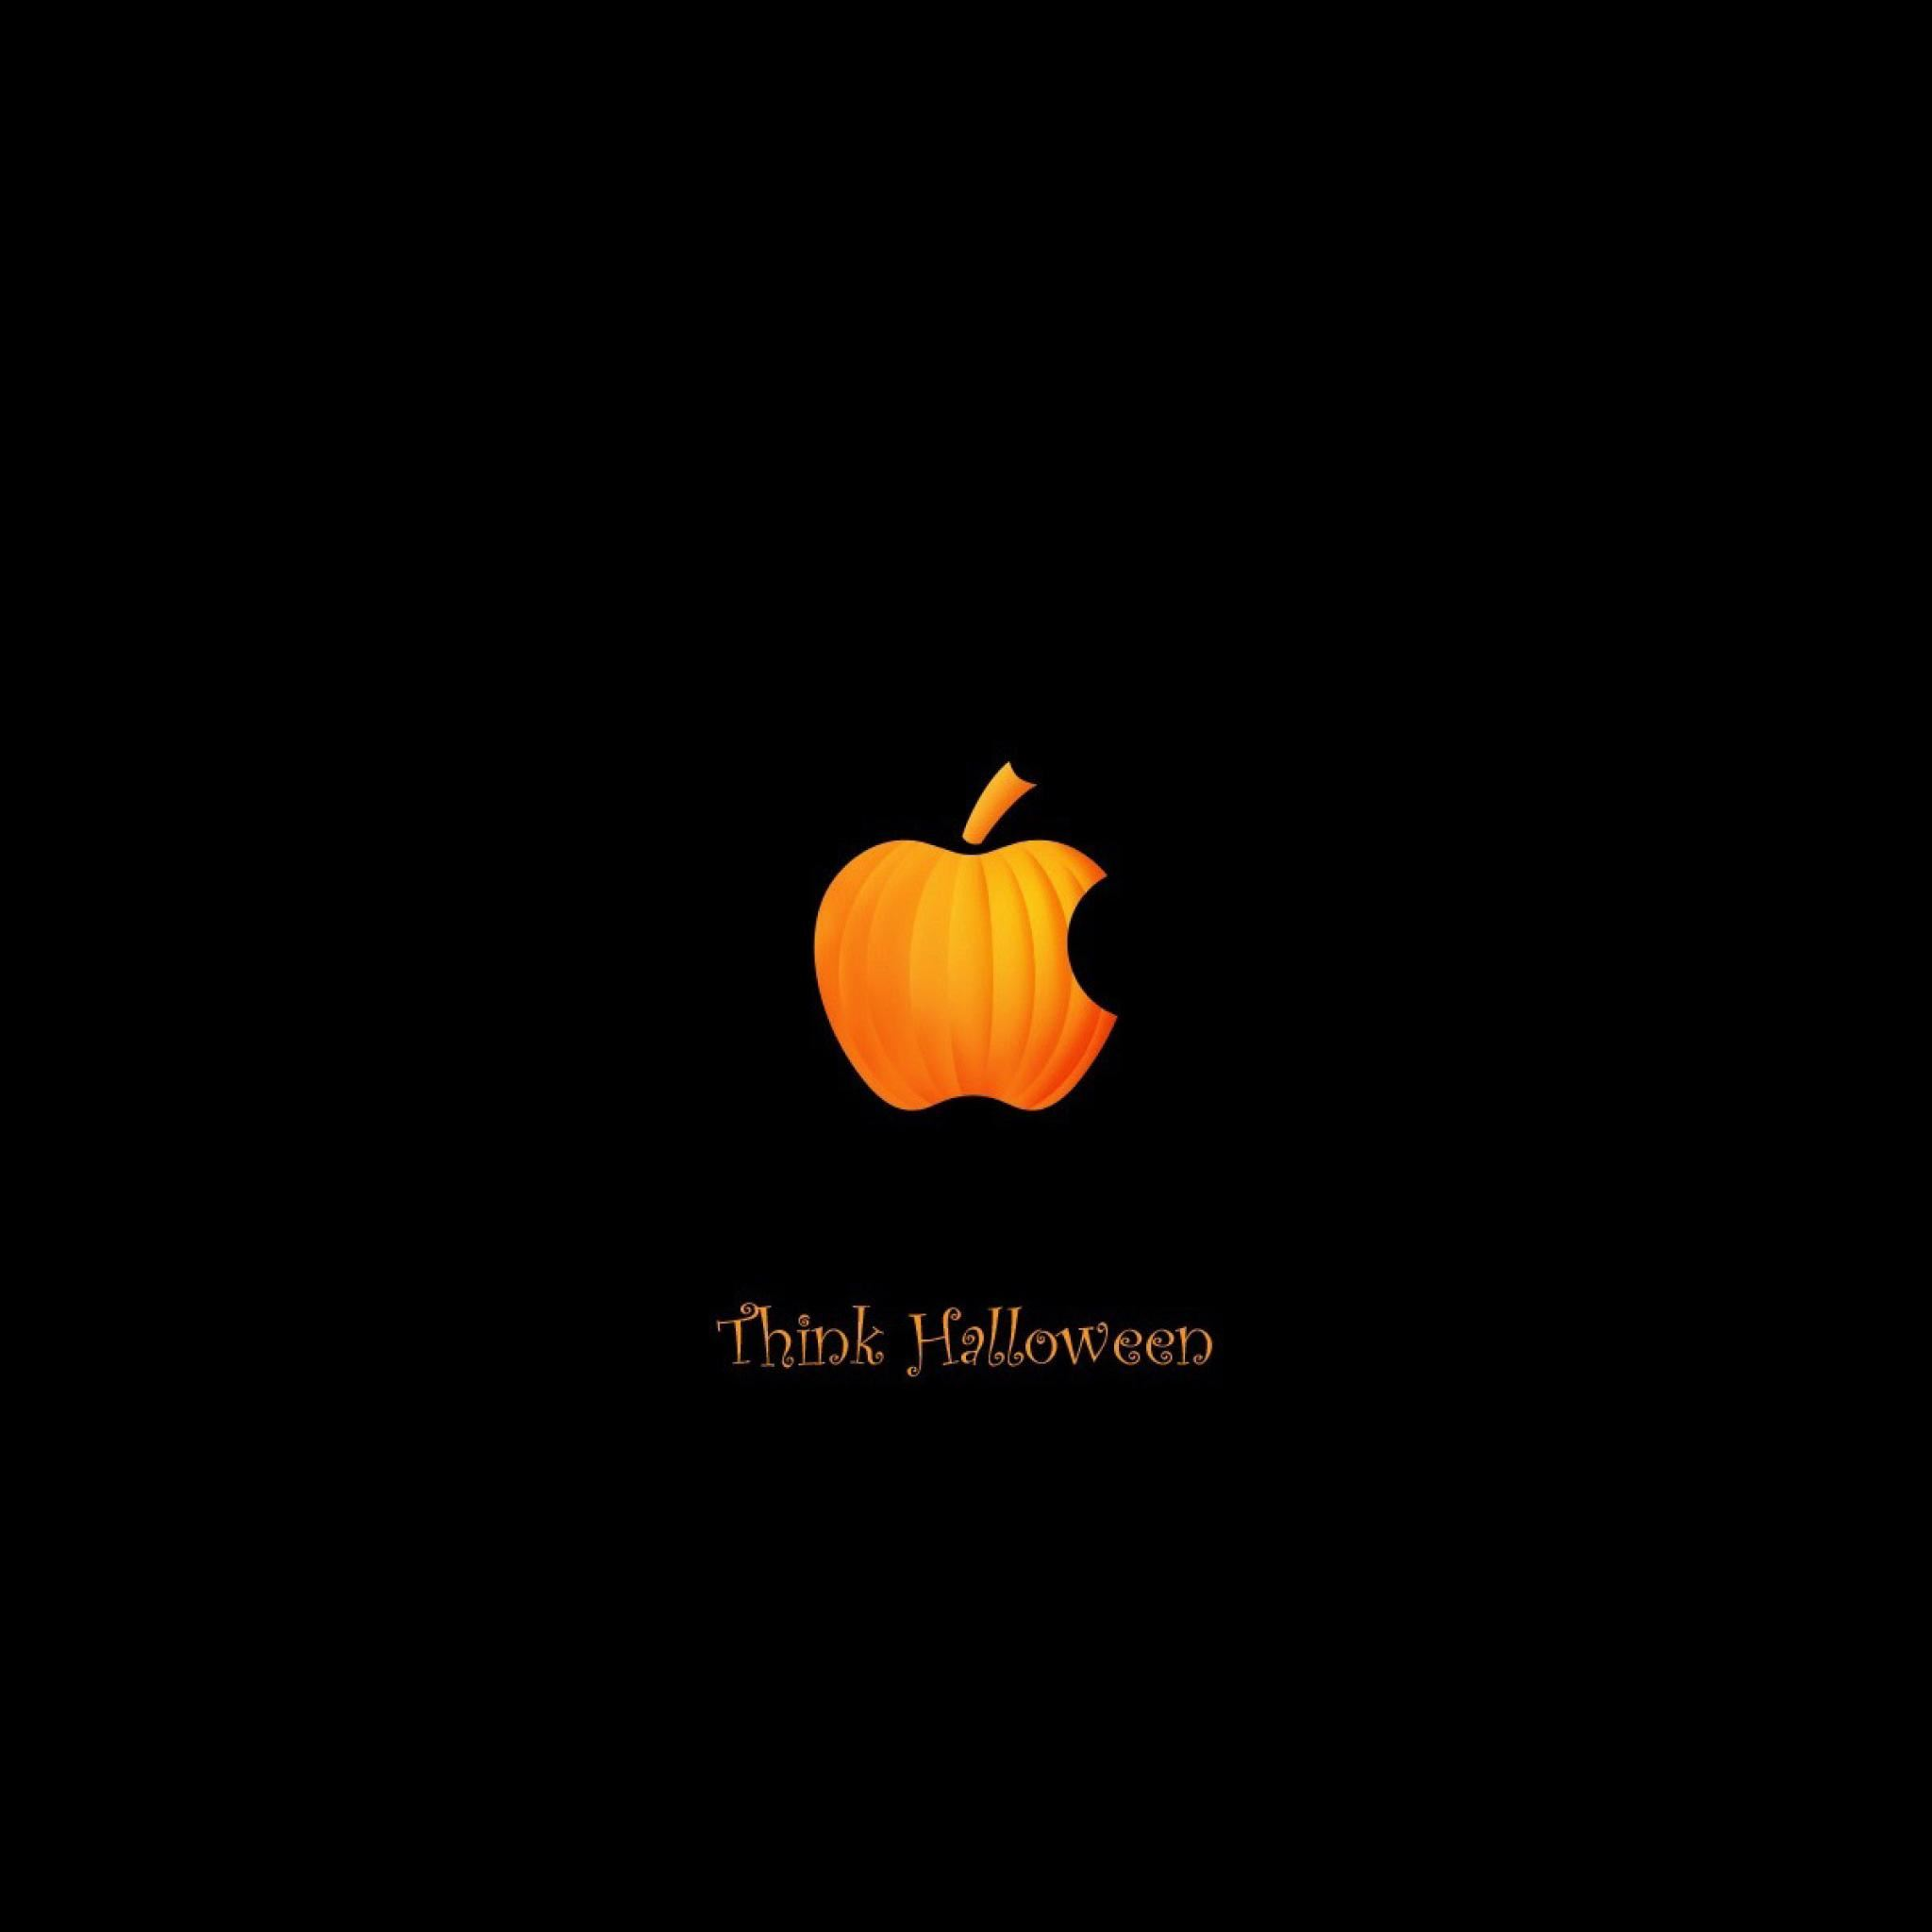 Halloween pumpkins apple iPad Air wallpaper